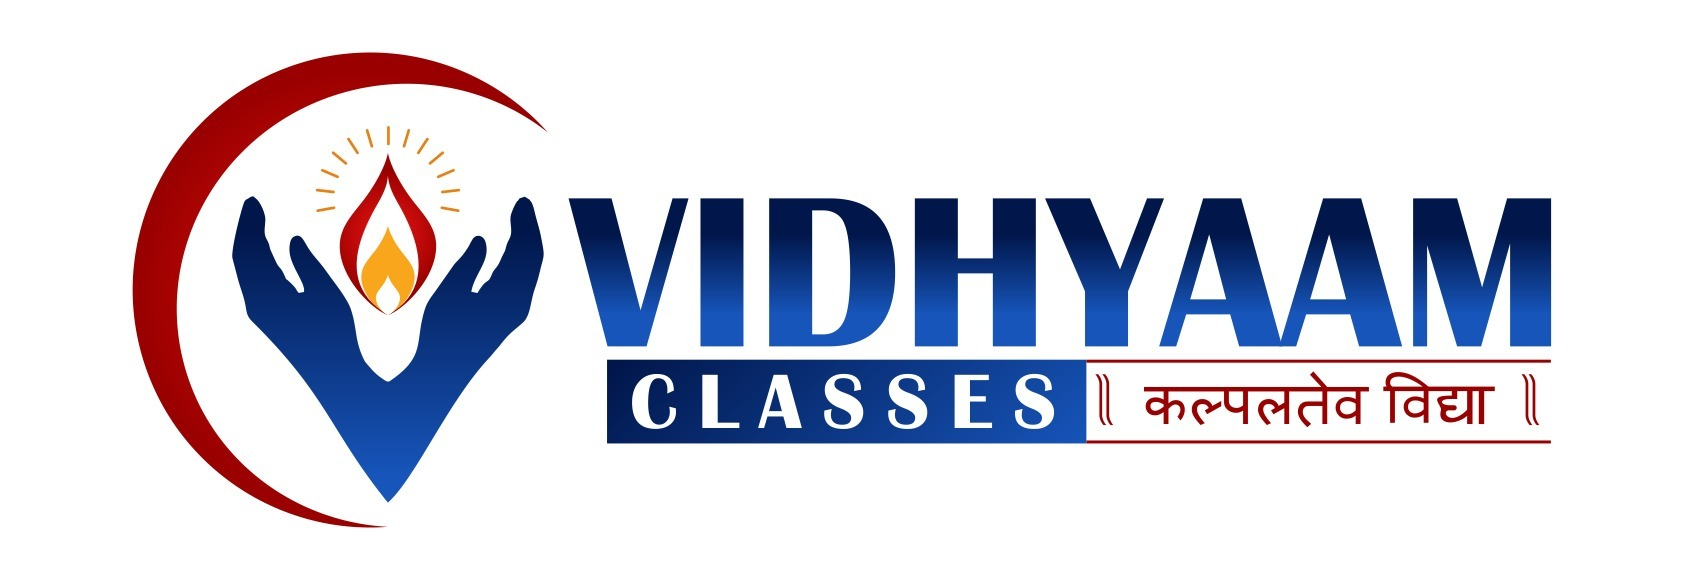 vidhyaamclasses (@vidhyaamclasses) Cover Image